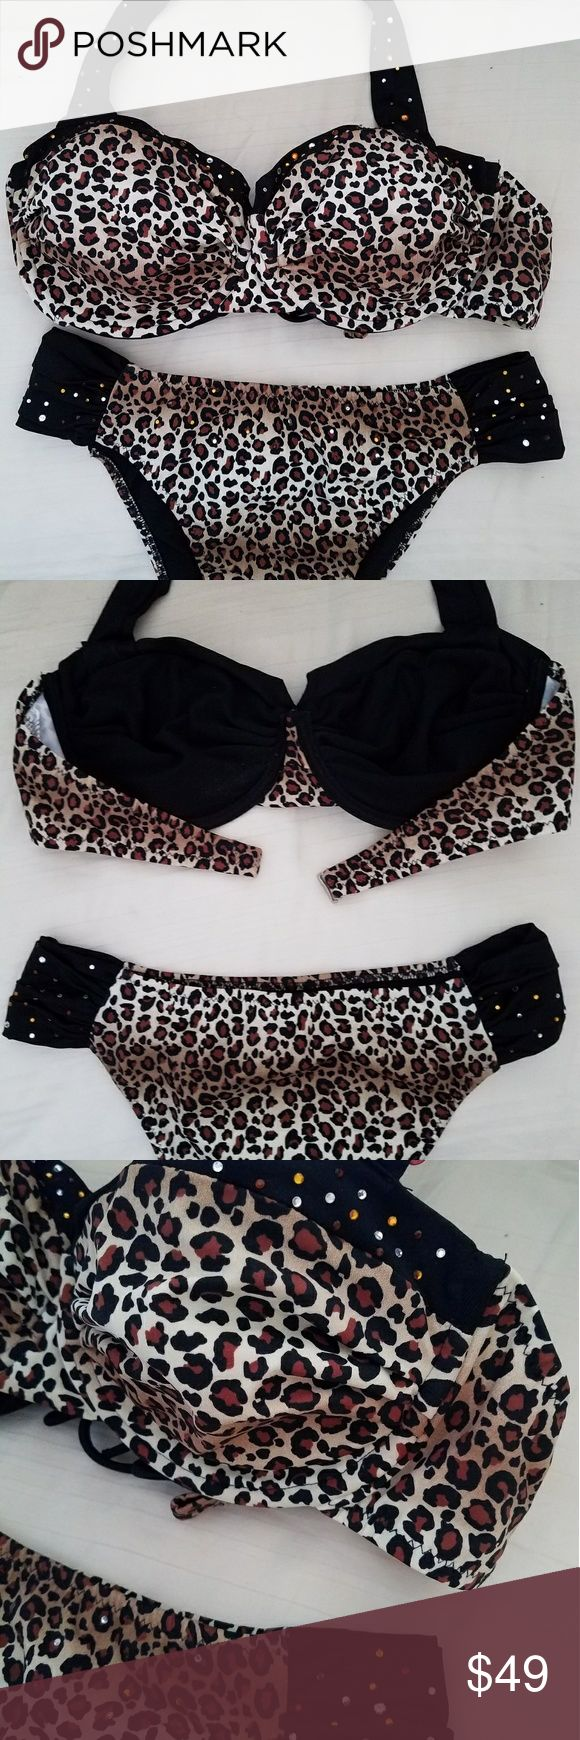 Two piece halter swimsuit with crystal stones Animal print two piece .Brand new never worn. Xl however bottoms seem smaller because they are a Brazilian cut. Top has no pads which im sure you can add but it does have underwire. Swim Bikinis